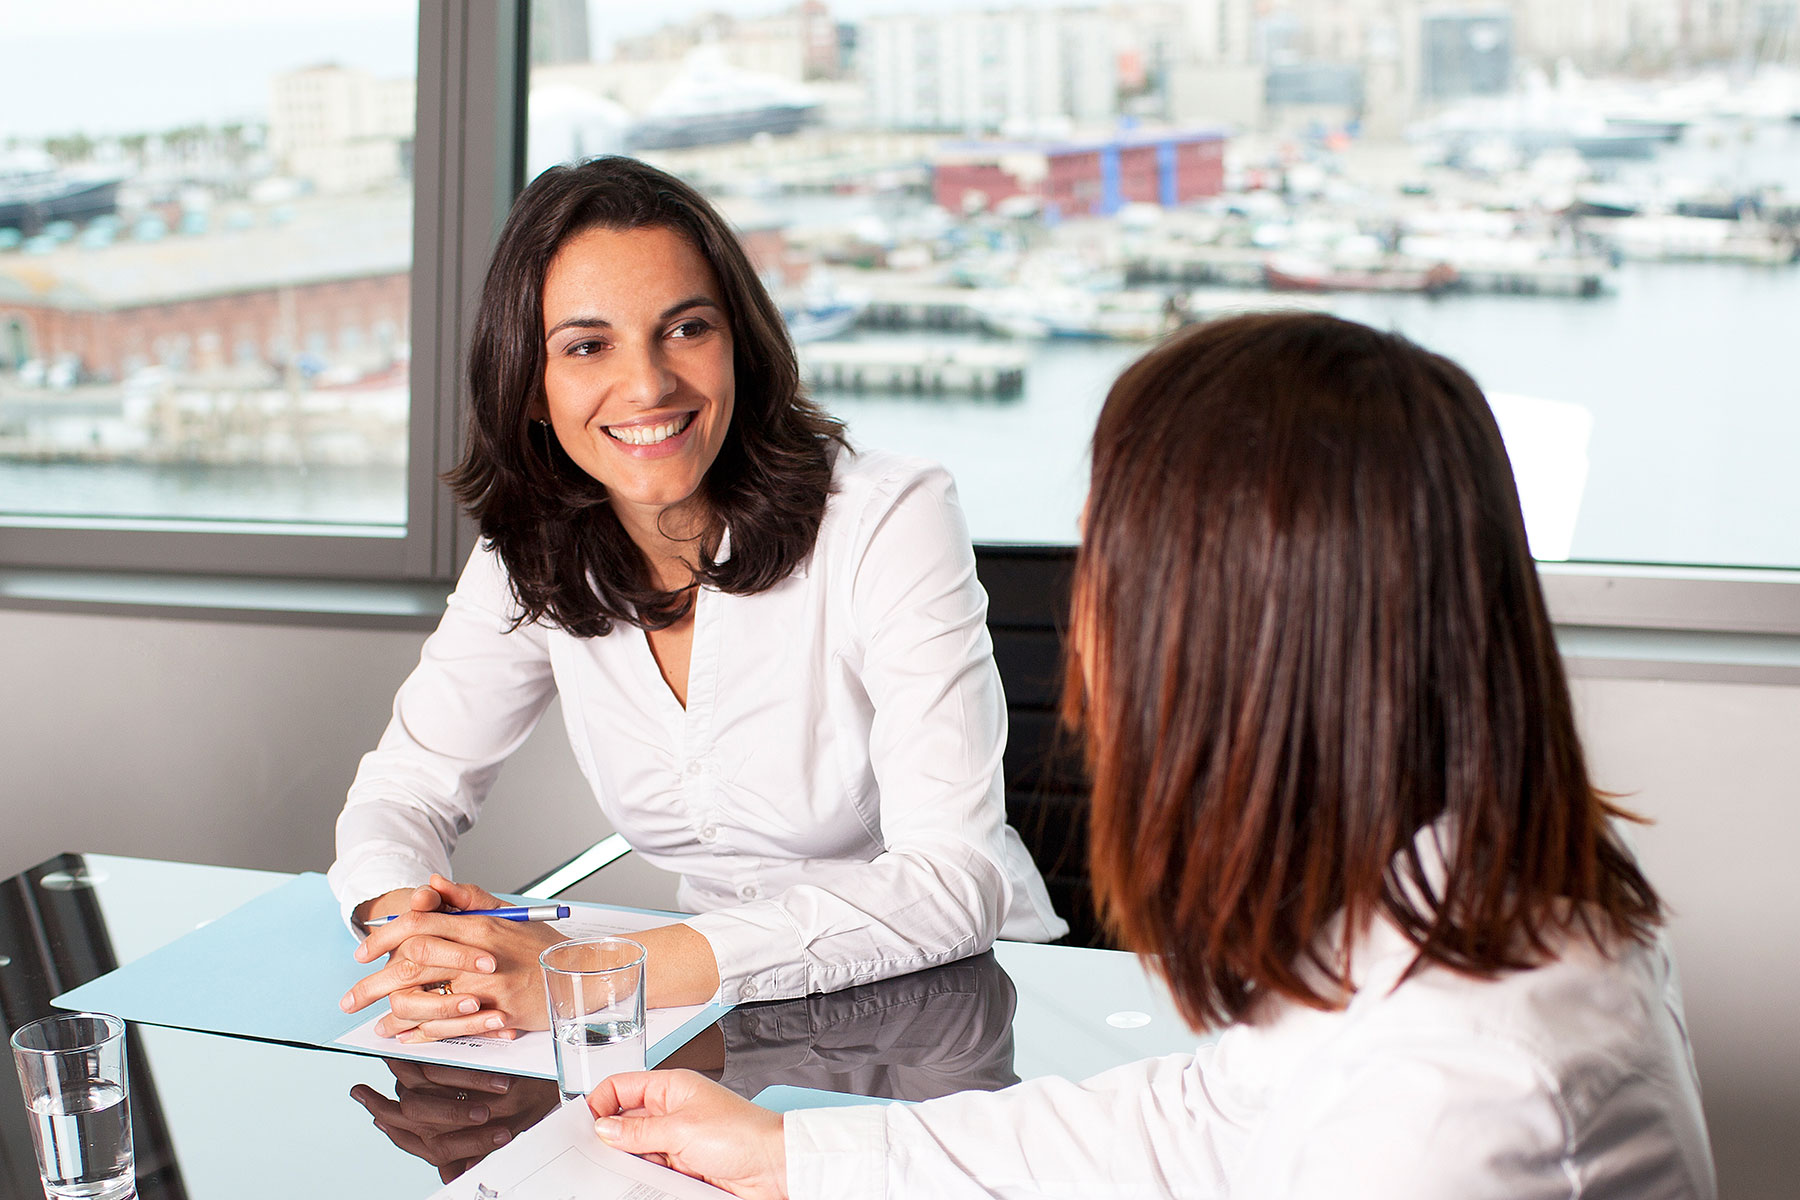 resume business coach for resume writers - Career Advice Career Tips From Professional Experts